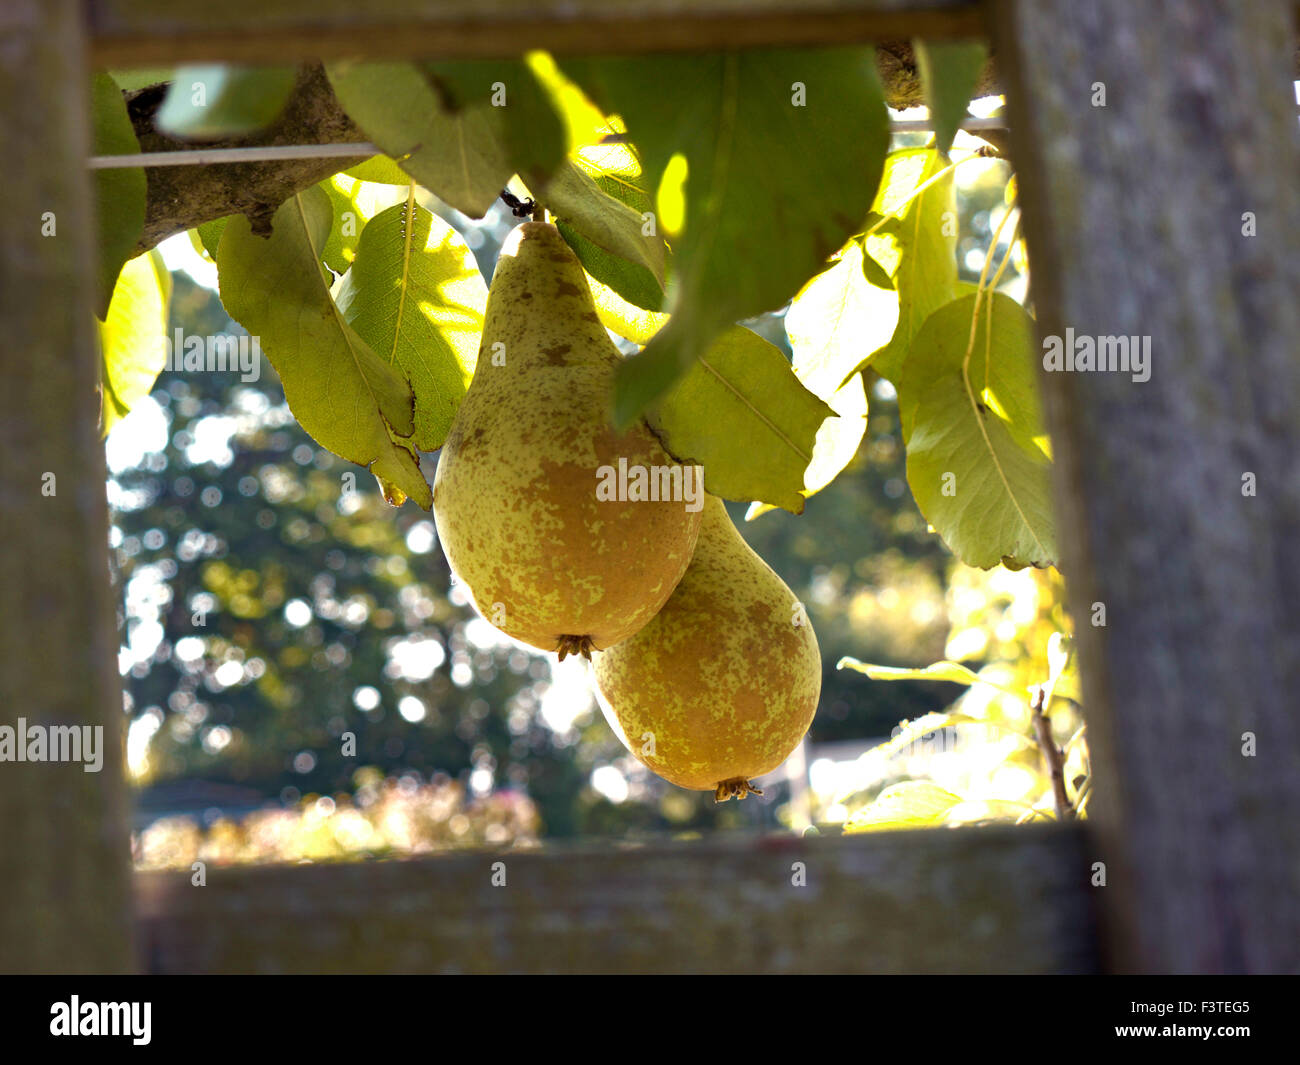 Espalier Conference Pears illuminated by late afternoon light in a kitchen garden - Stock Image